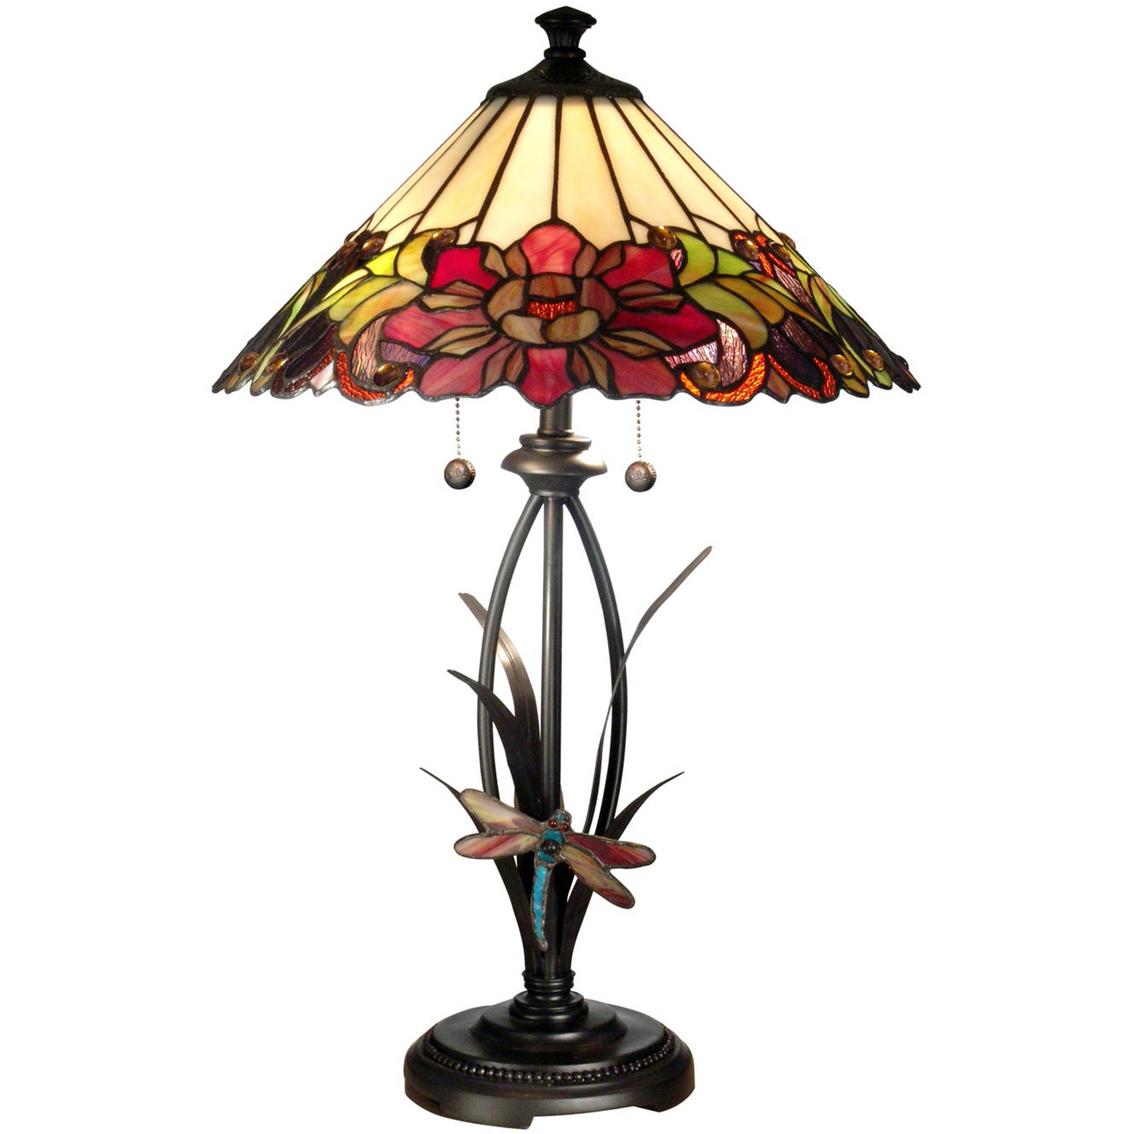 dale tiffany floral table lamp with dragonfly accent lamps handmade runner decorative accessories for dining room modern teak outdoor furniture office cupboard tool chest wheels